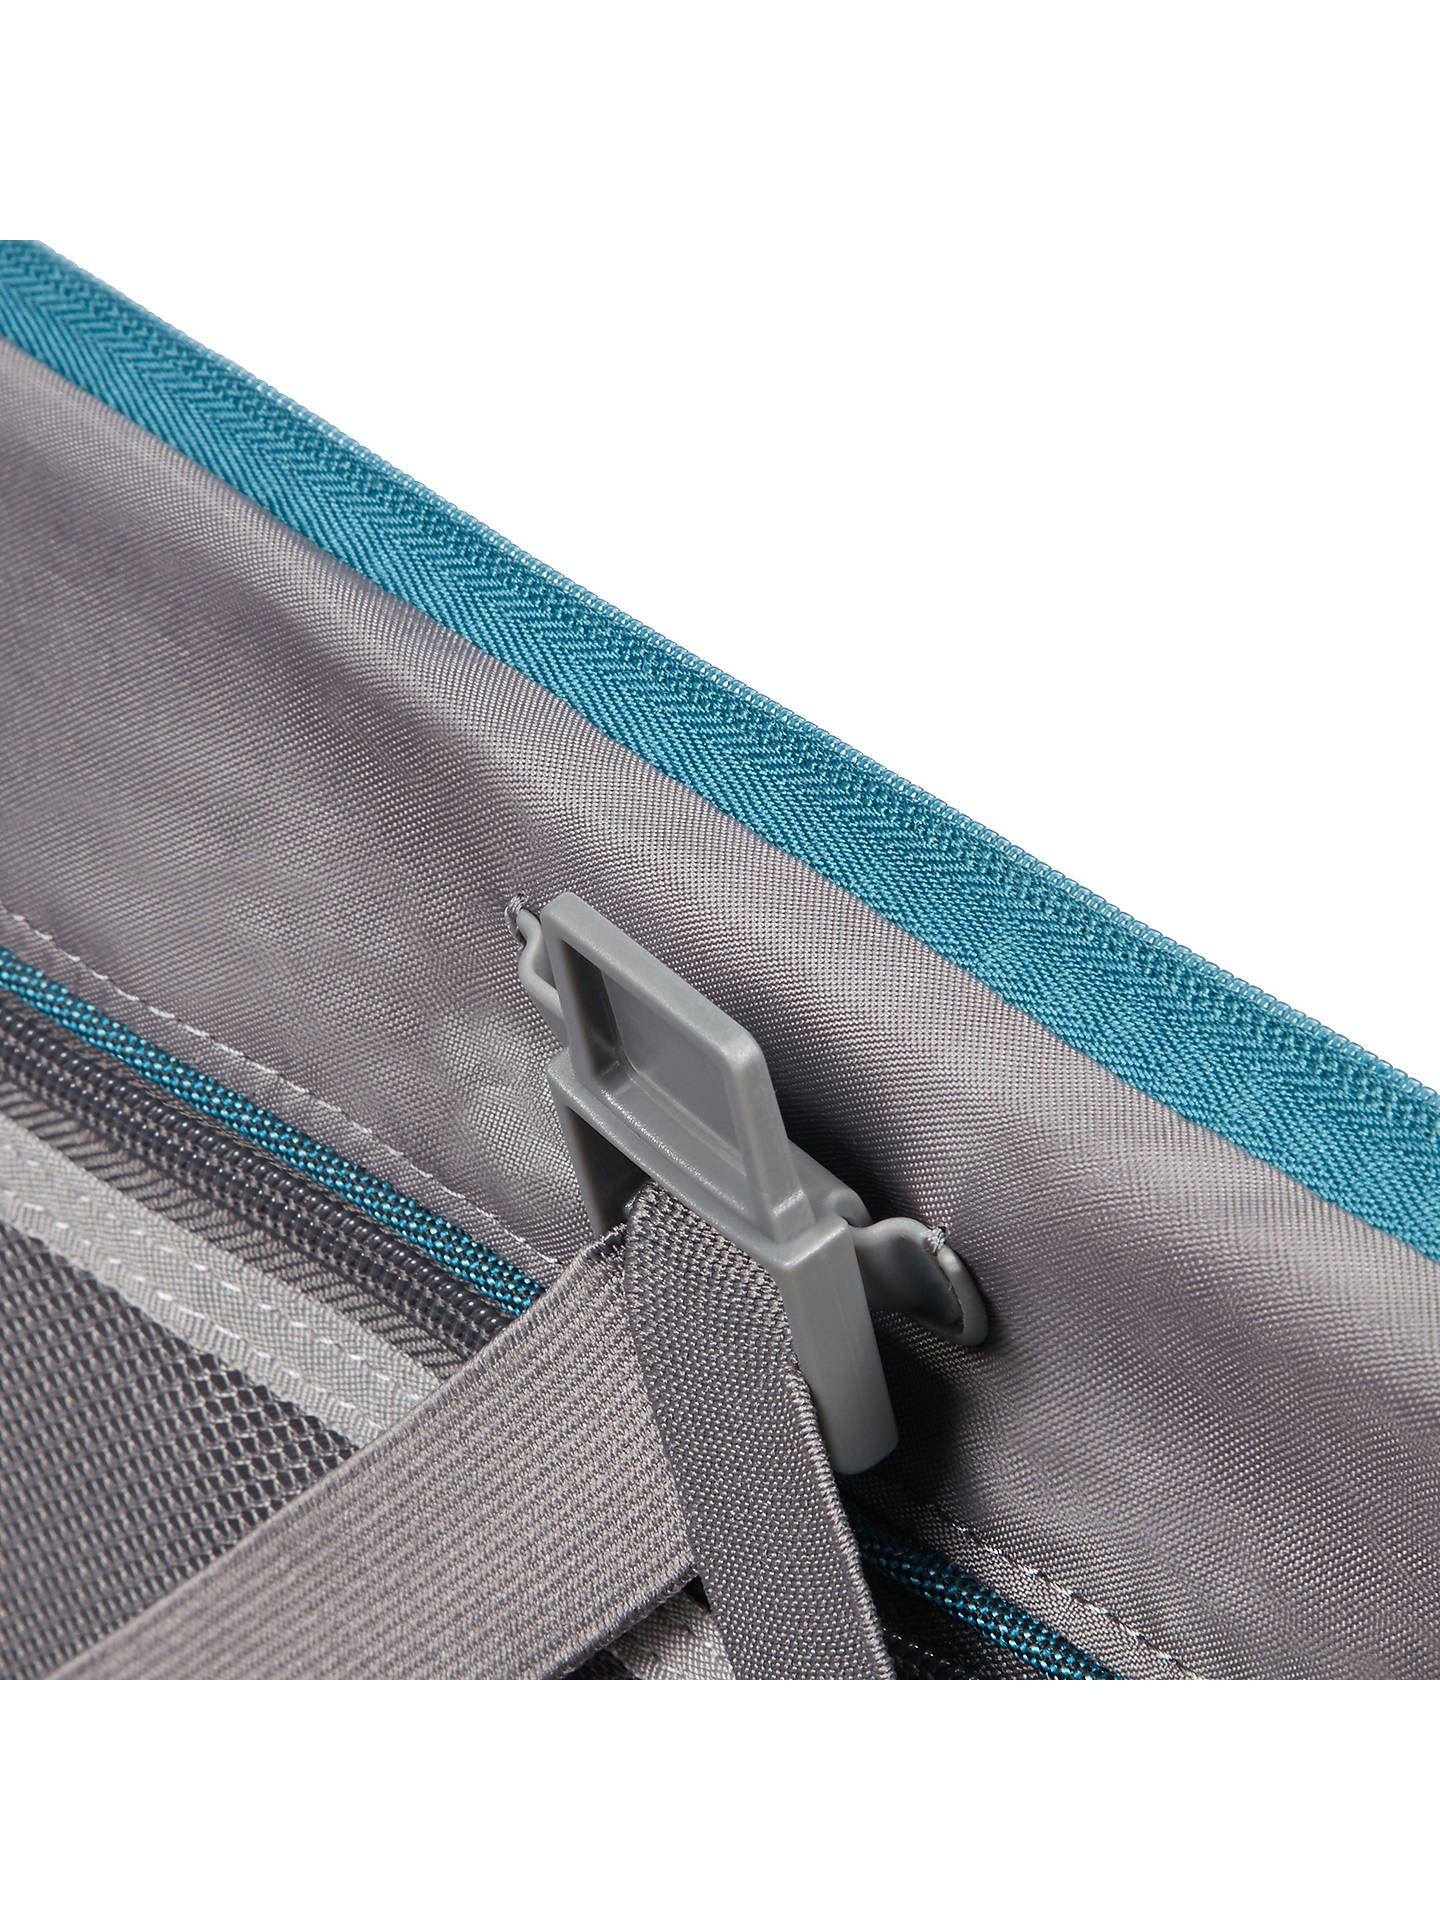 BuySamsonite Spark SNG 55cm 4-Wheel Cabin Case, Petrol Blue Online at johnlewis.com